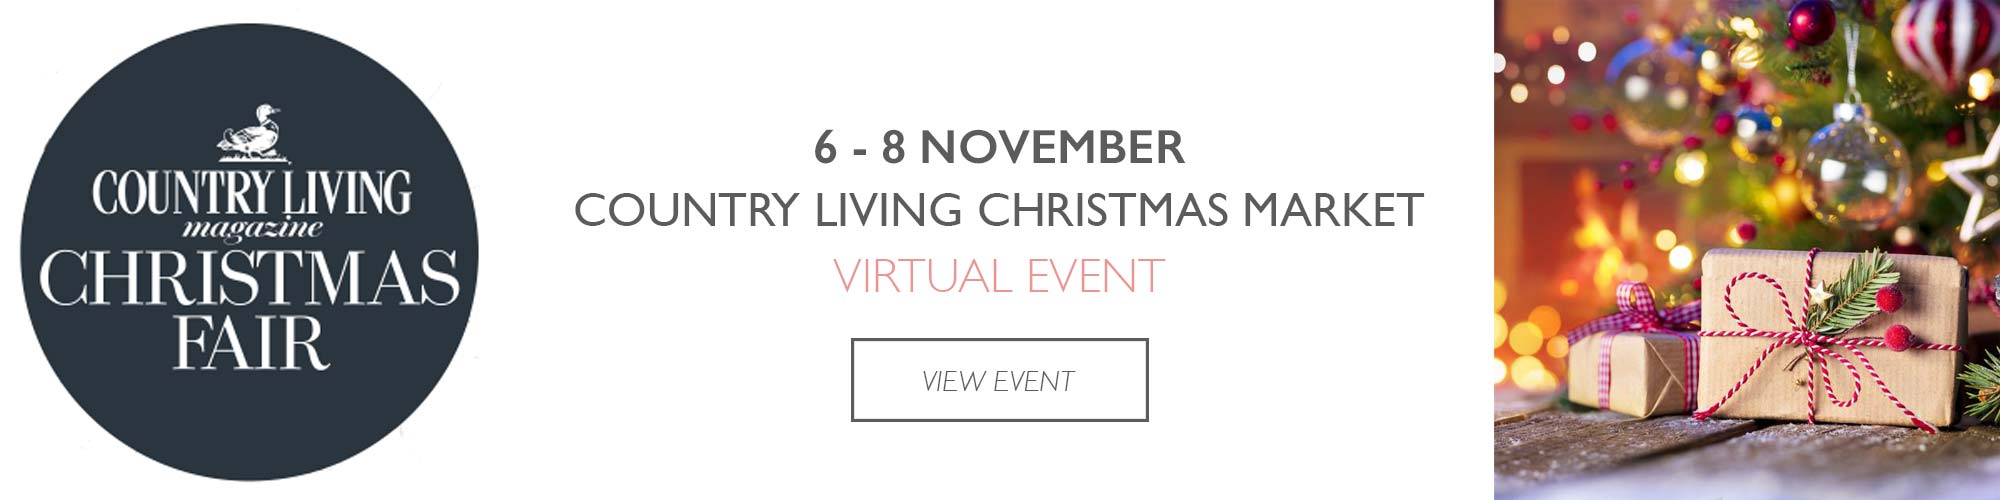 country living christmas market virtual event dates